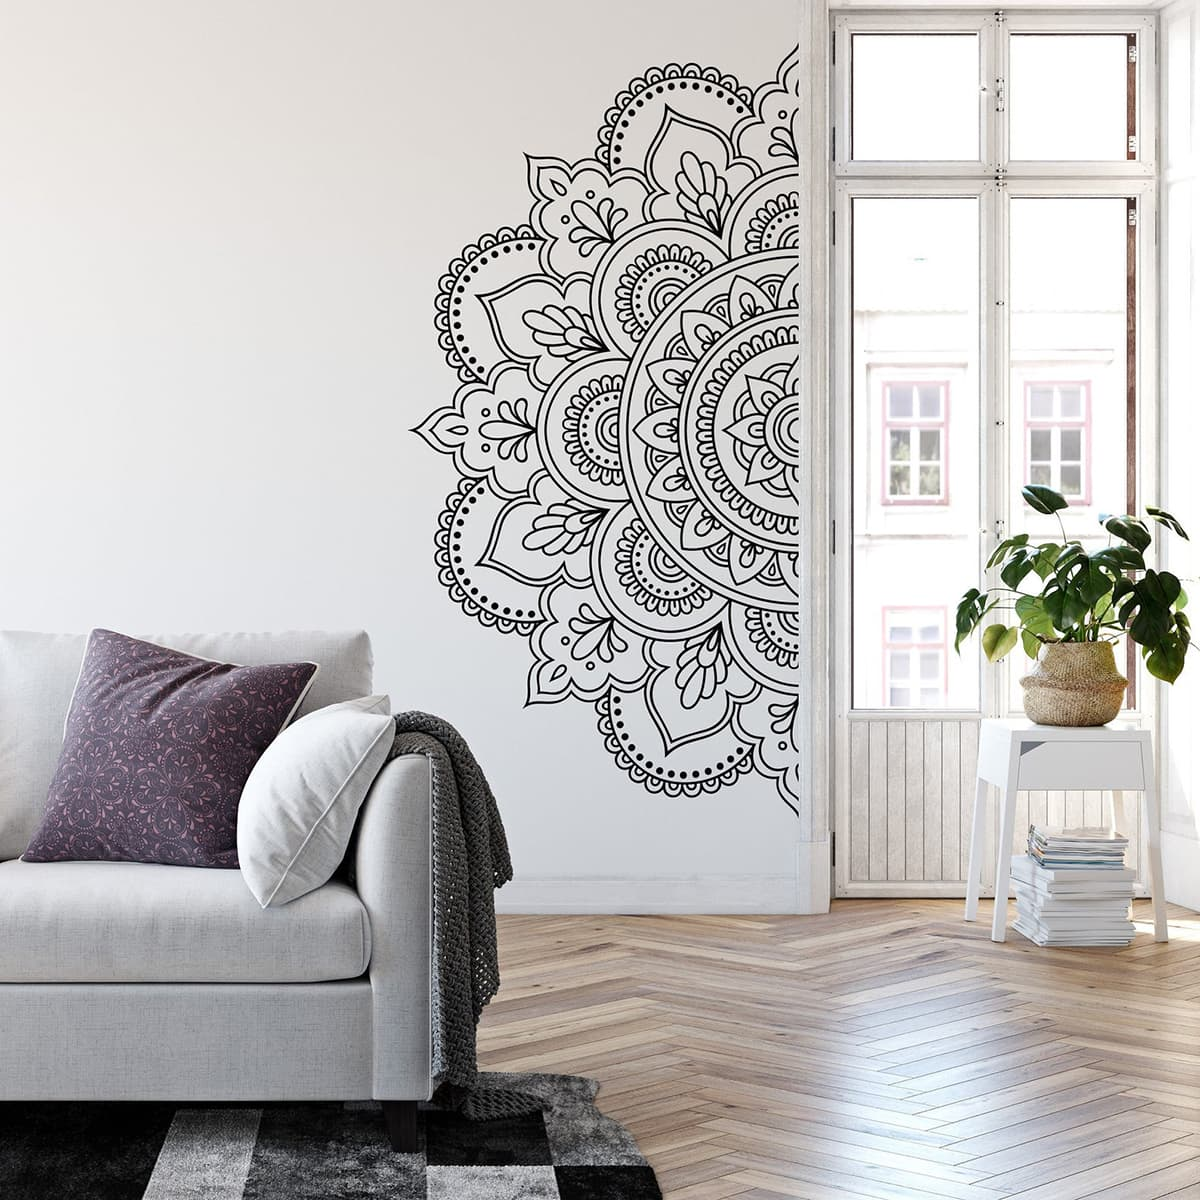 Mandala mural or sticker